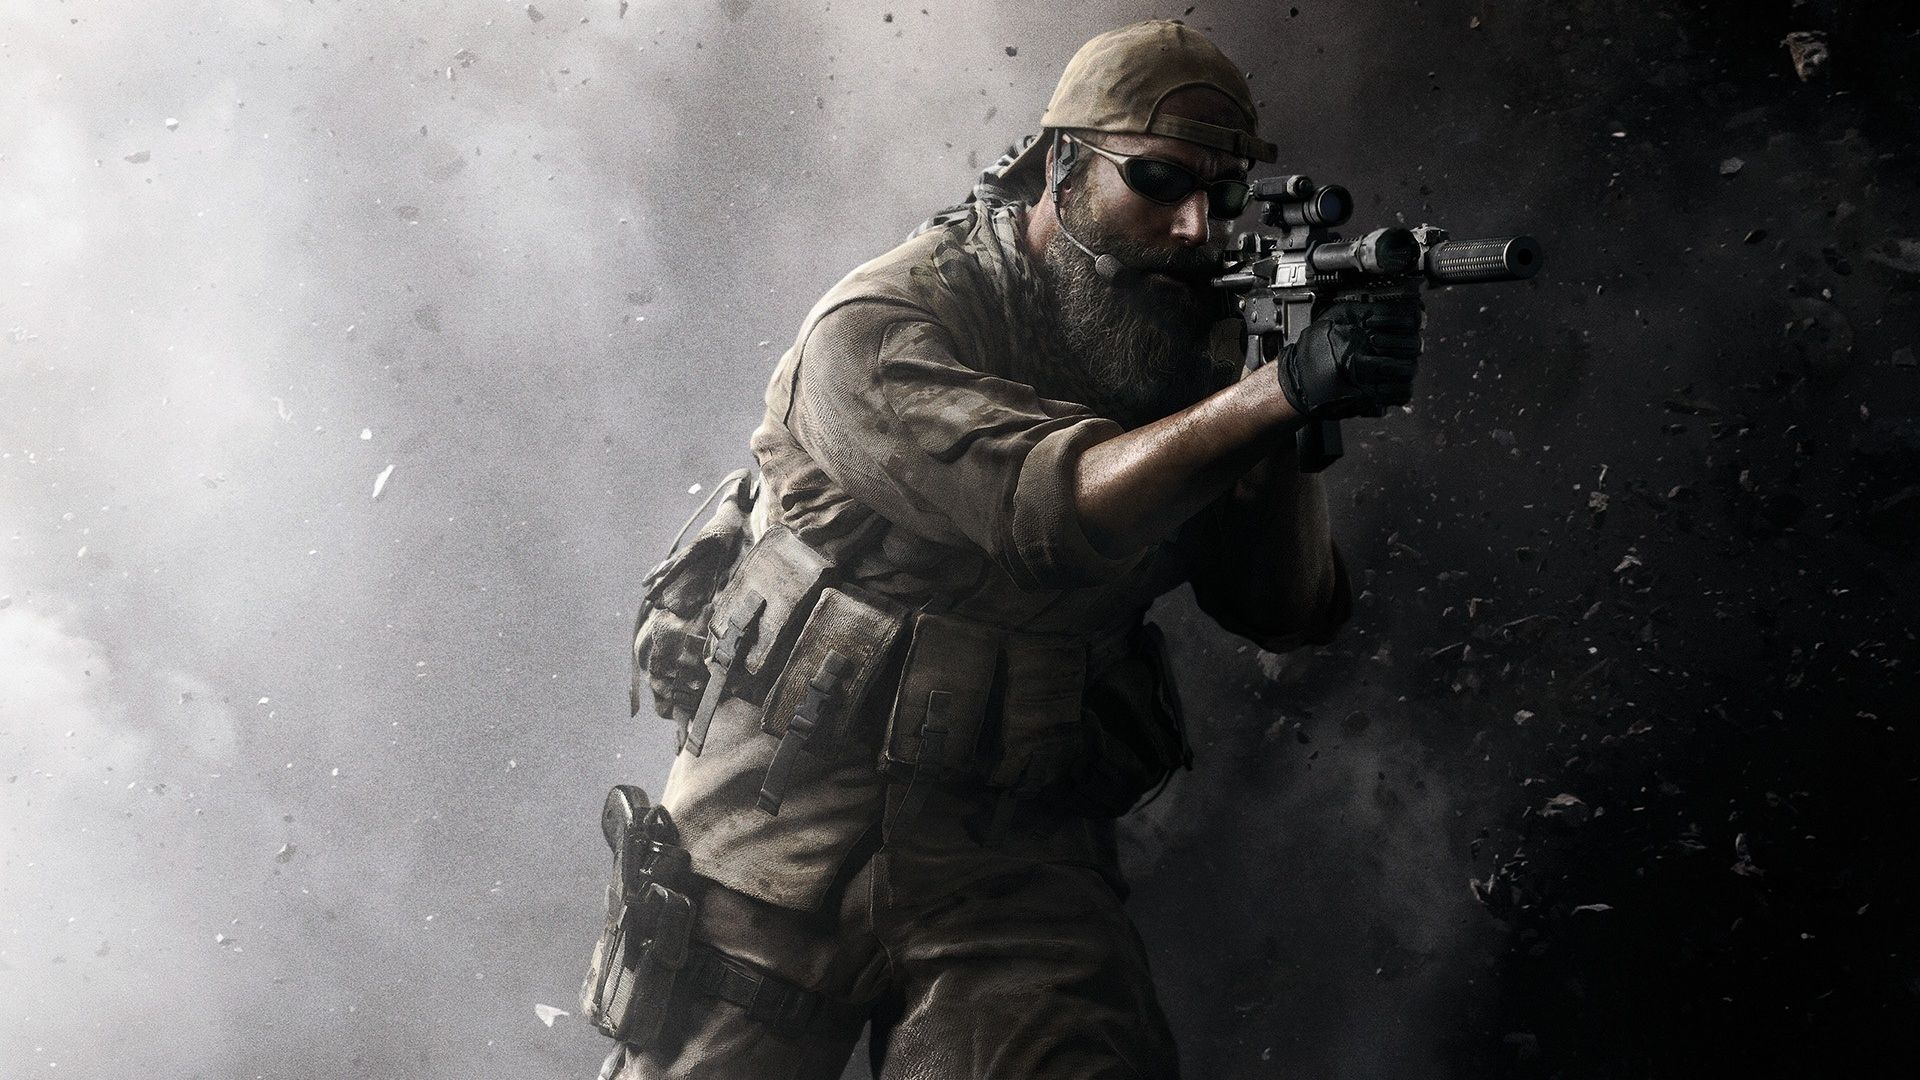 Free Medal Of Honor Wallpaper Medal Of Honor Delta Force Tactical Beard